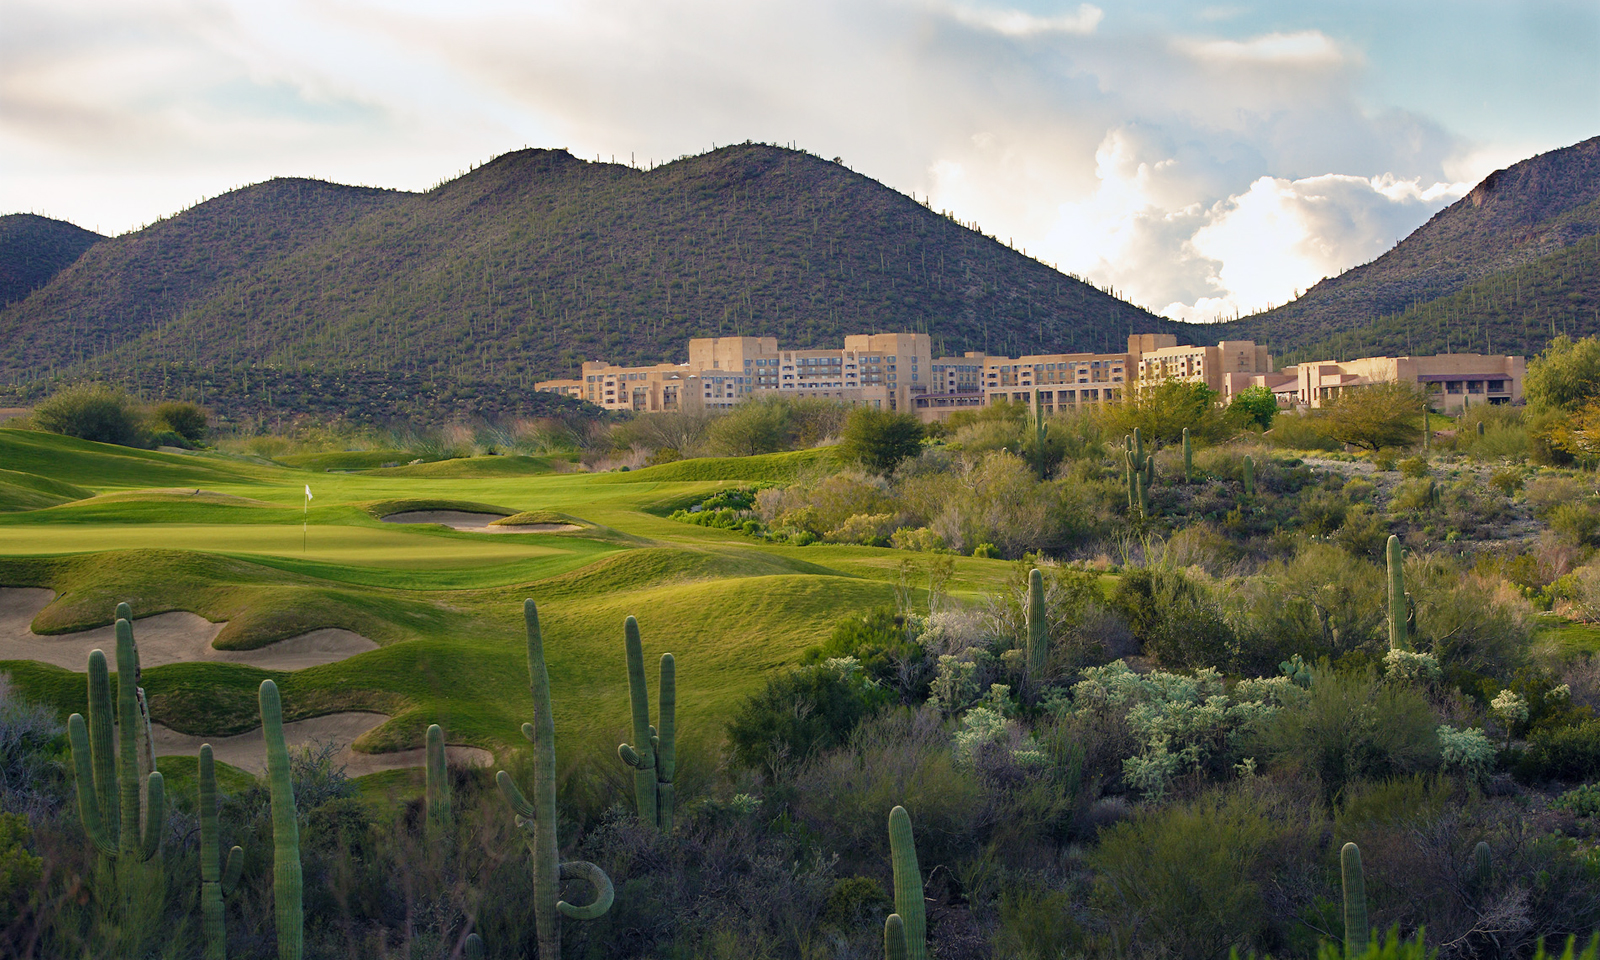 JW Marriott Starr Pass Golf Club — former home to the PGA Tour's Tucson Open